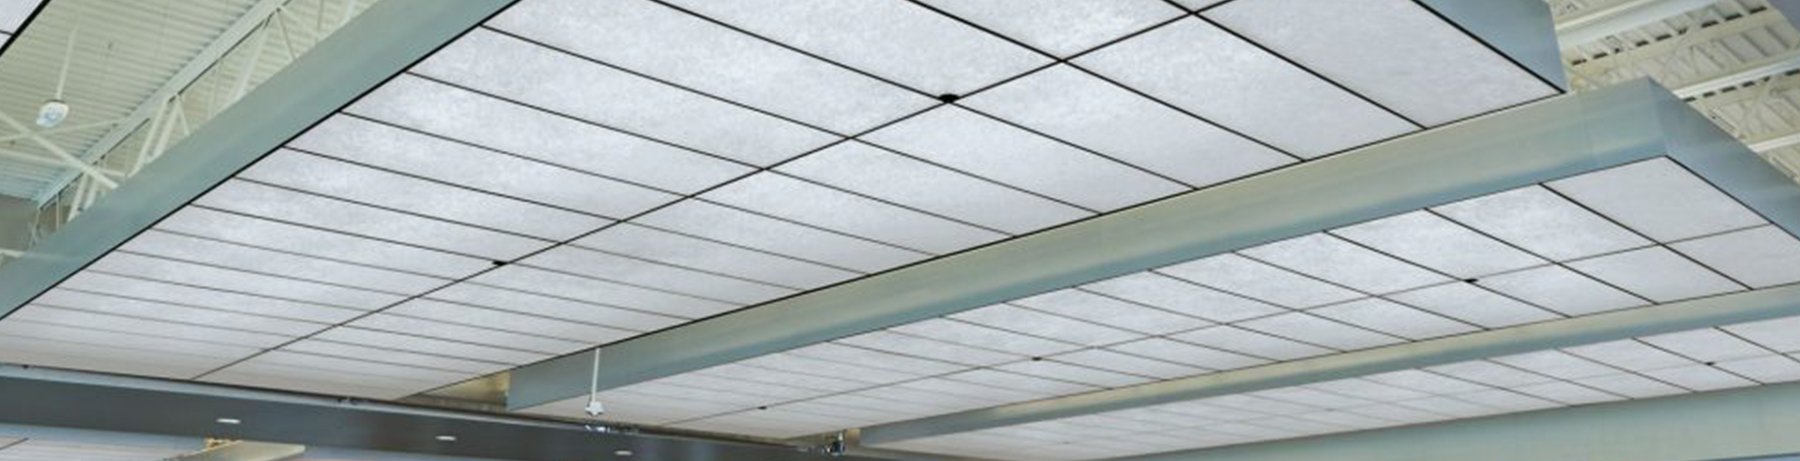 Ceiling Tiles - Translucent Ceiling Tiles